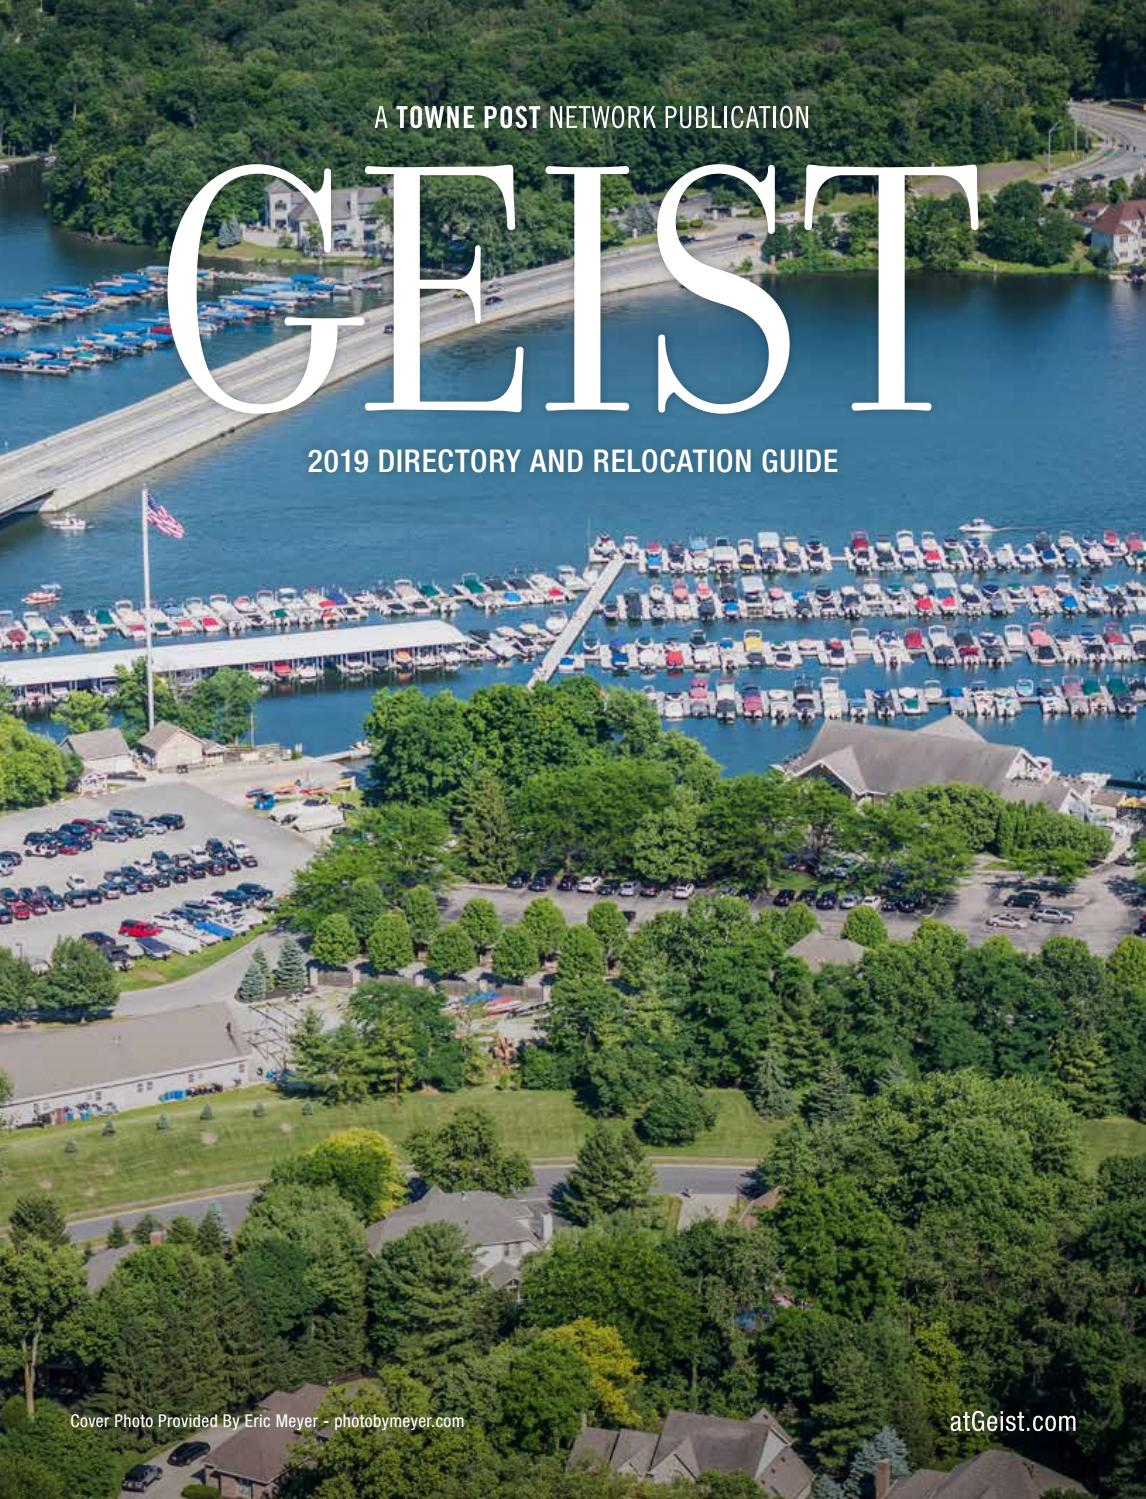 Geist Magazine 2019 Directory And Relocation Guide By Towne Post Network Inc Issuu